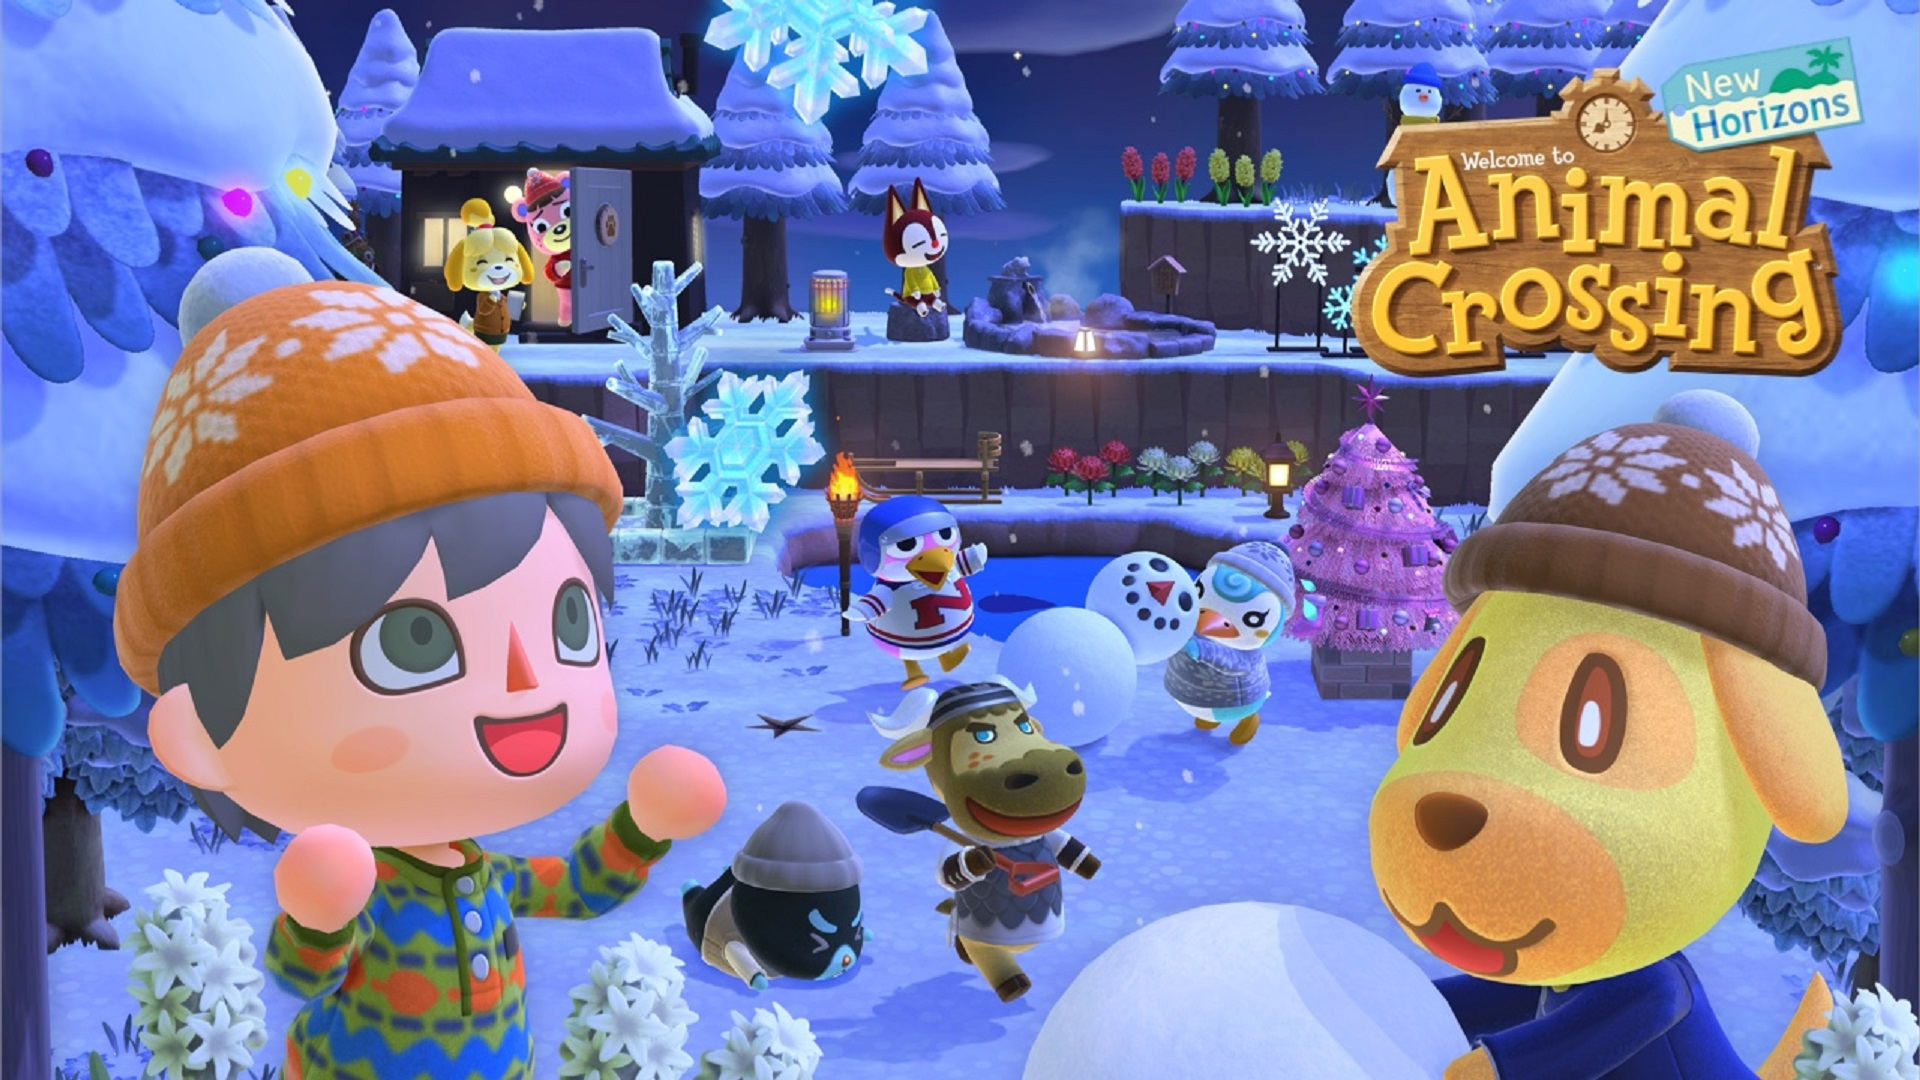 Unique features from the Animal Crossing New Horizons catalog in the NSO app